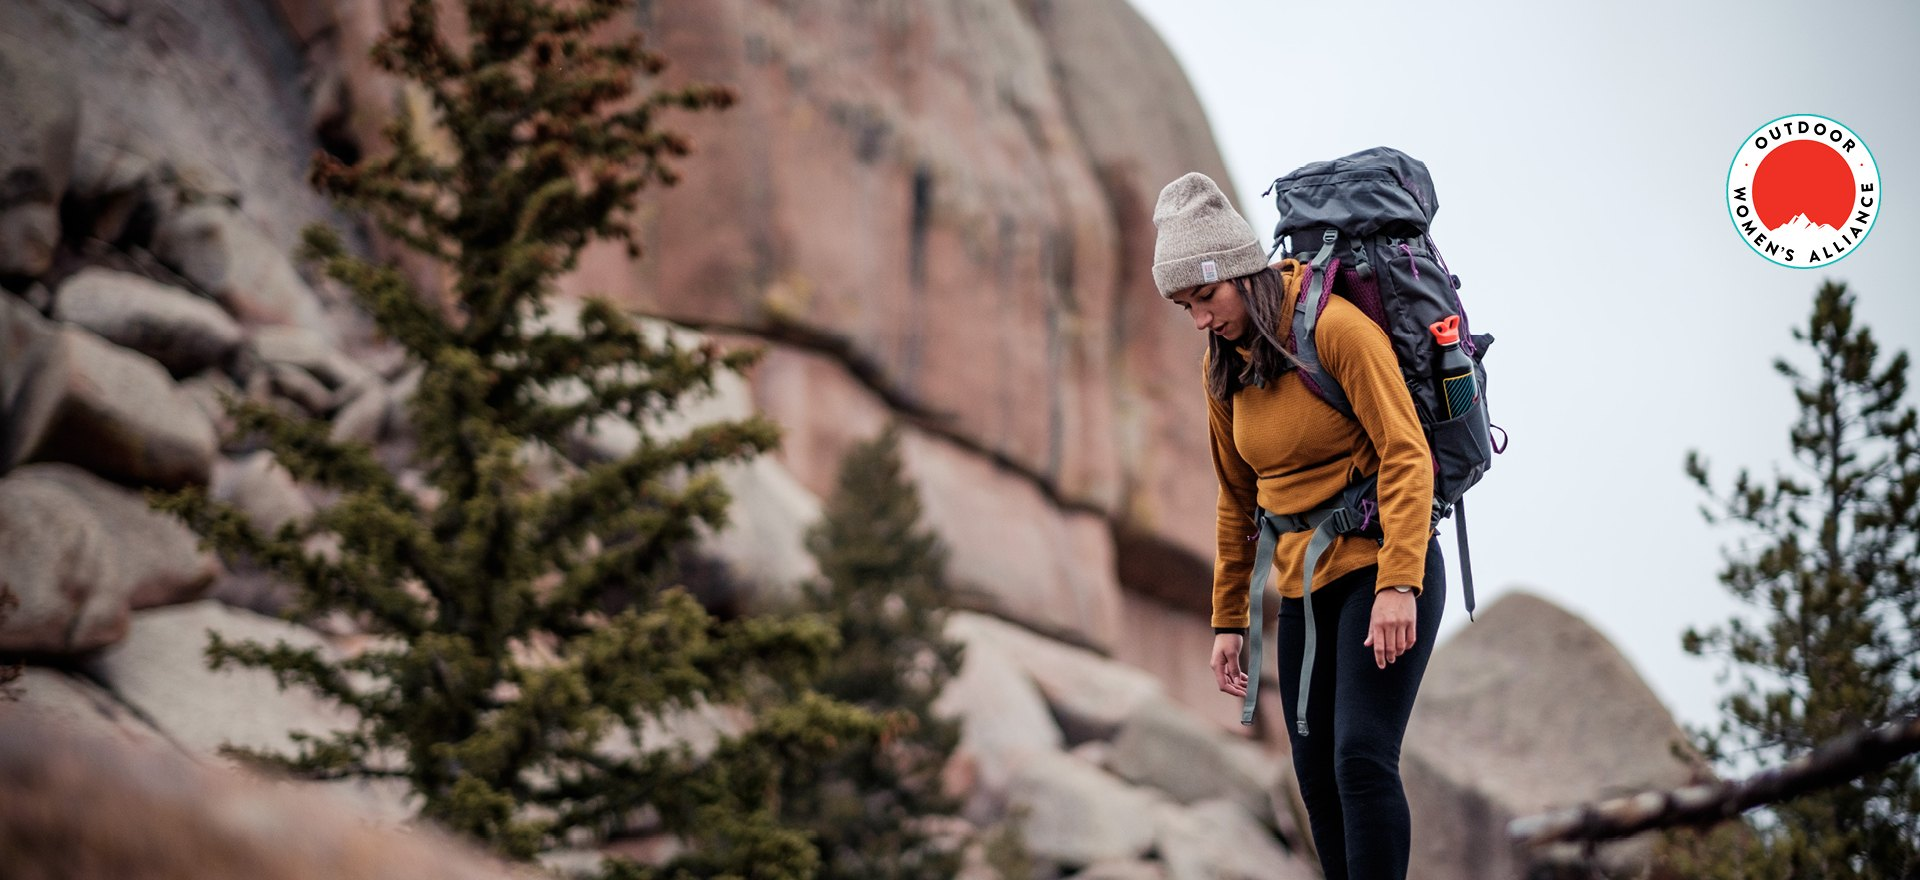 15% of Sales Support Outdoor Women's Alliance in May